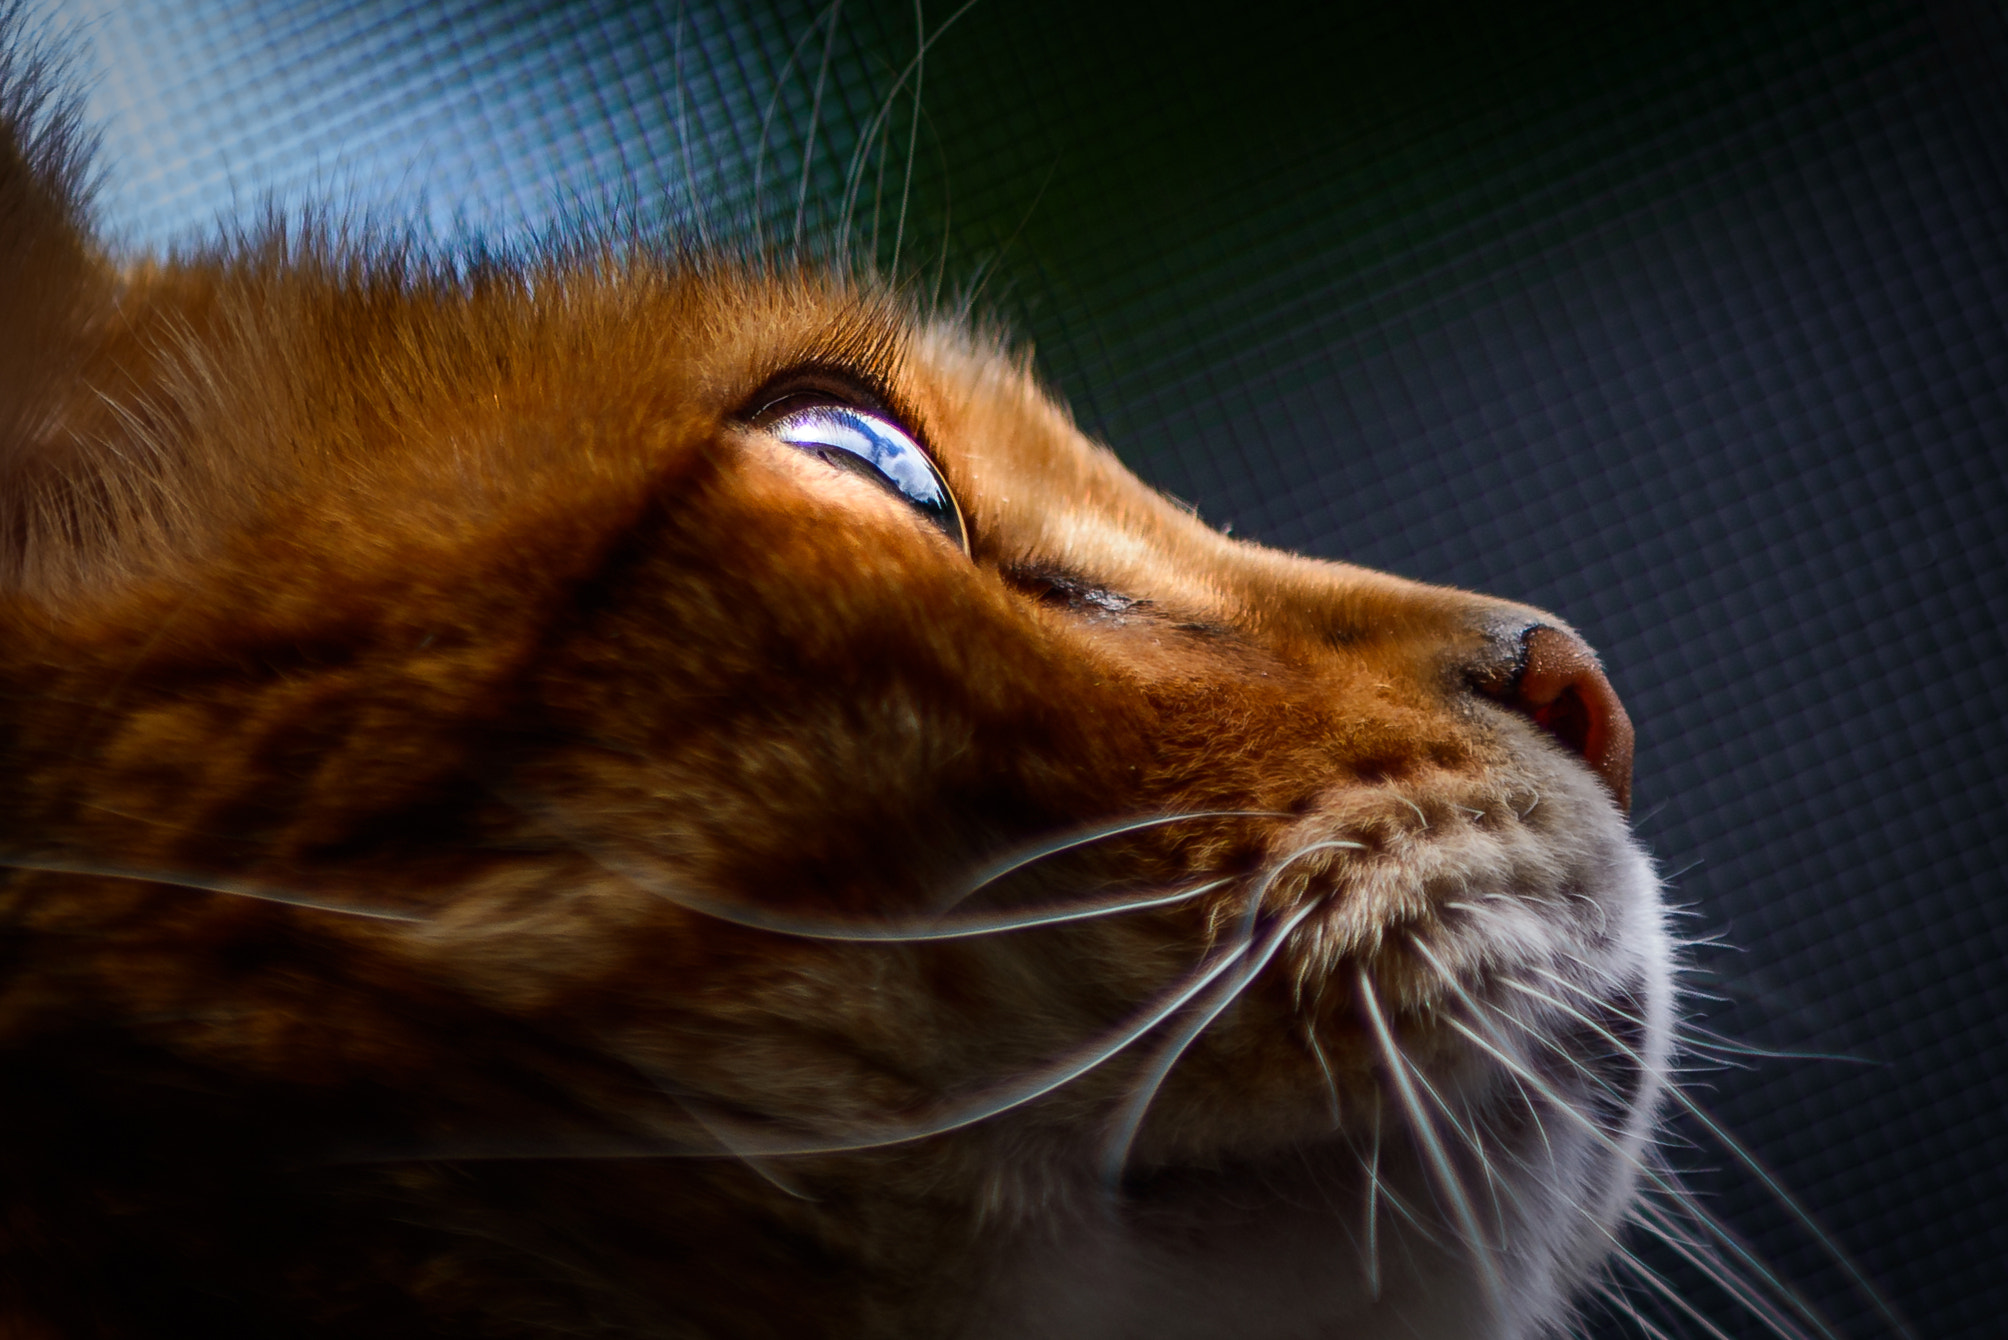 Photograph The World in a Cat's Eye by A. Mills on 500px